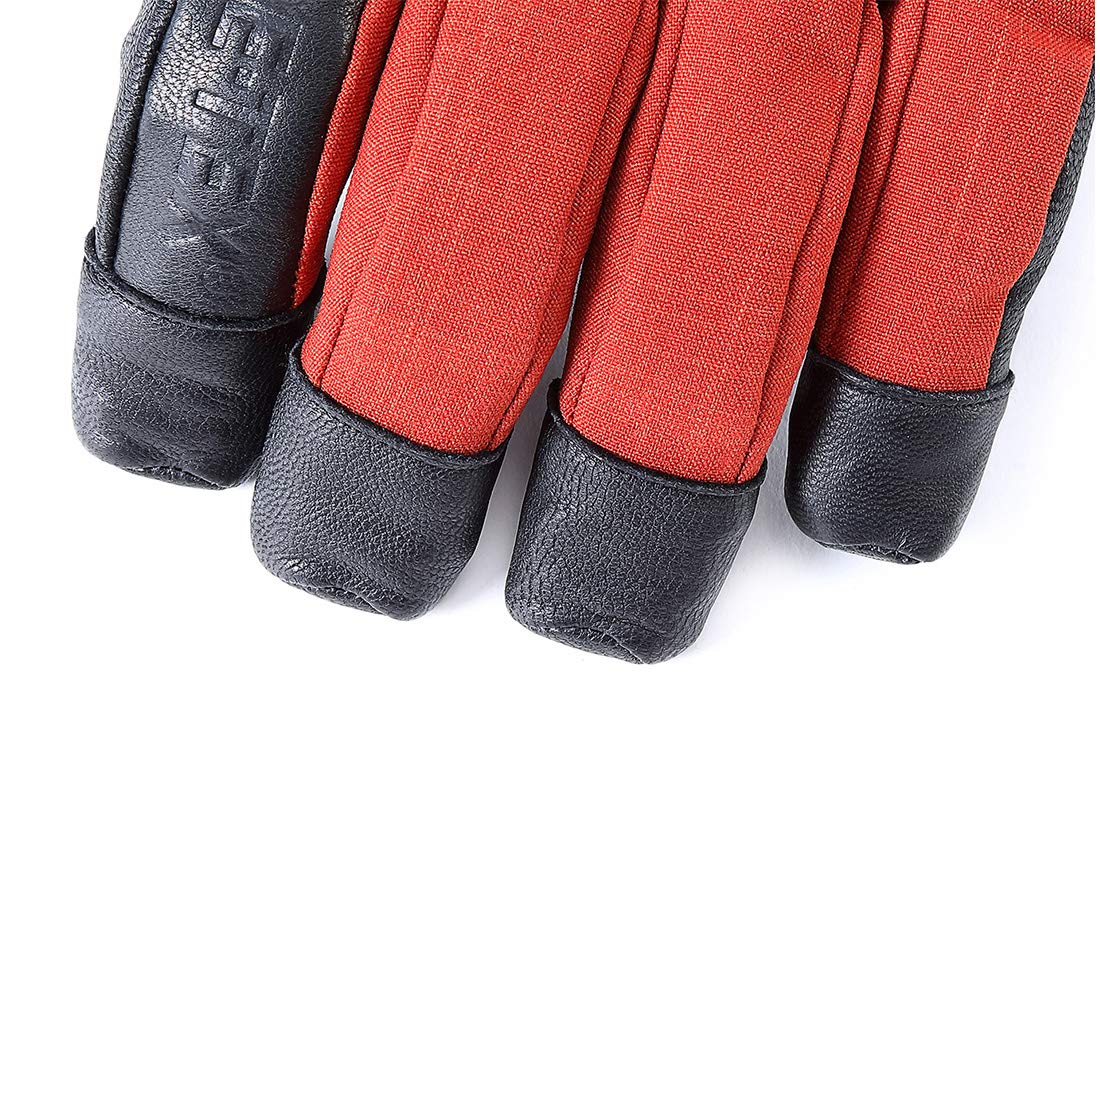 KAILAS GORE-TEX 3-in-1 Pro Ski Gloves – Women's(Dark Red,S) by KAILAS (Image #3)